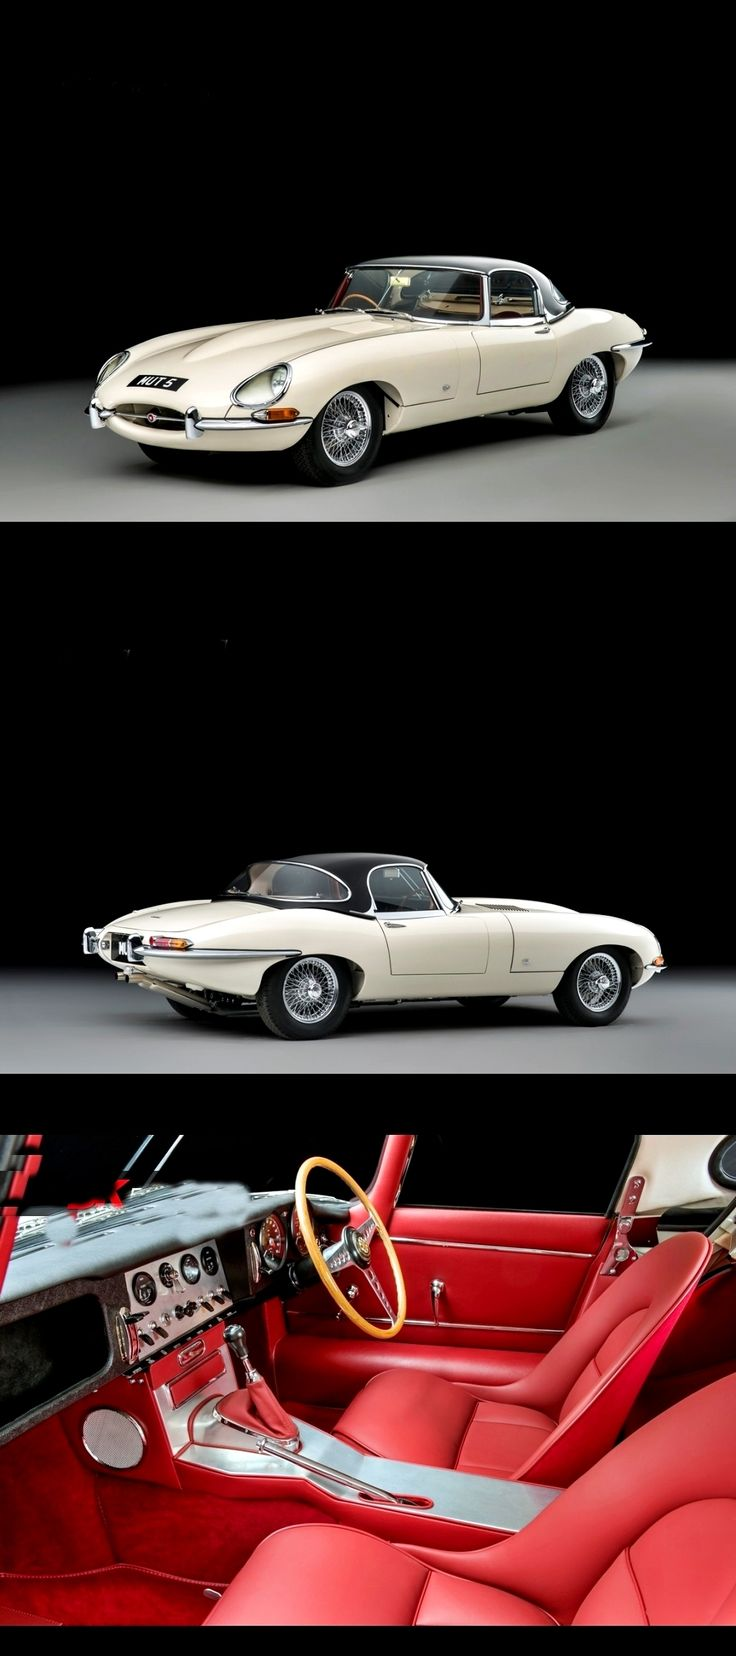 121 Best Jagur Images On Pinterest Jaguar Cars And Car Stuff Wiring Diagrams 1957 Xk140 E Type Roadster 1961